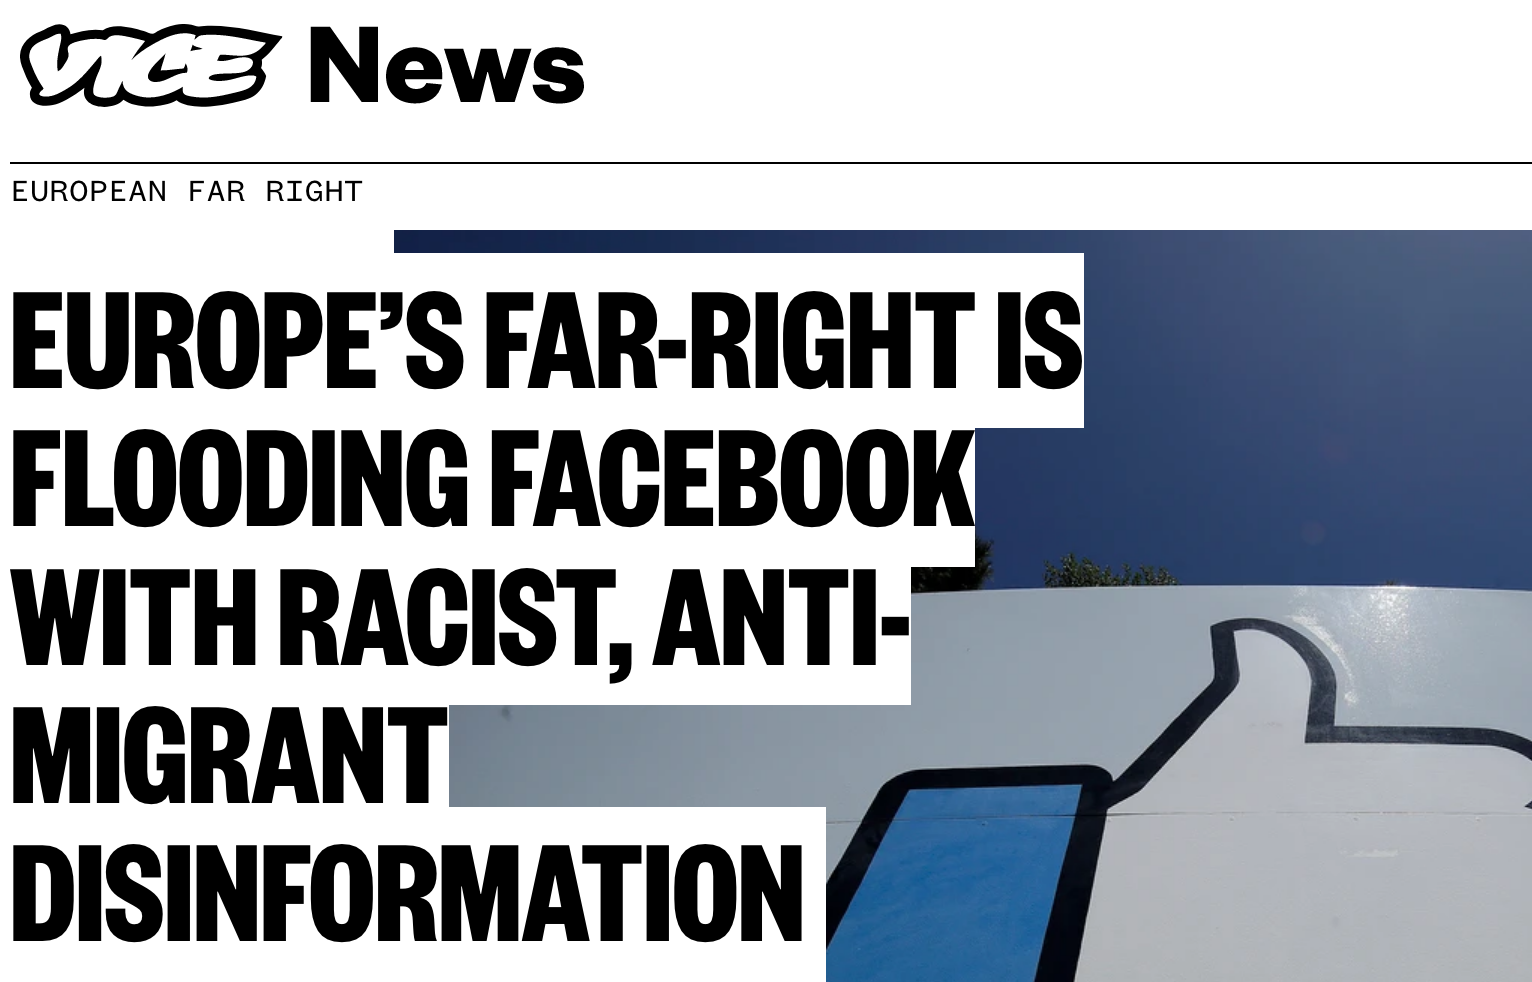 VICE News: Europe's Far-Right Is Flooding Facebook with Racist, Anti-Migrant Disinformation